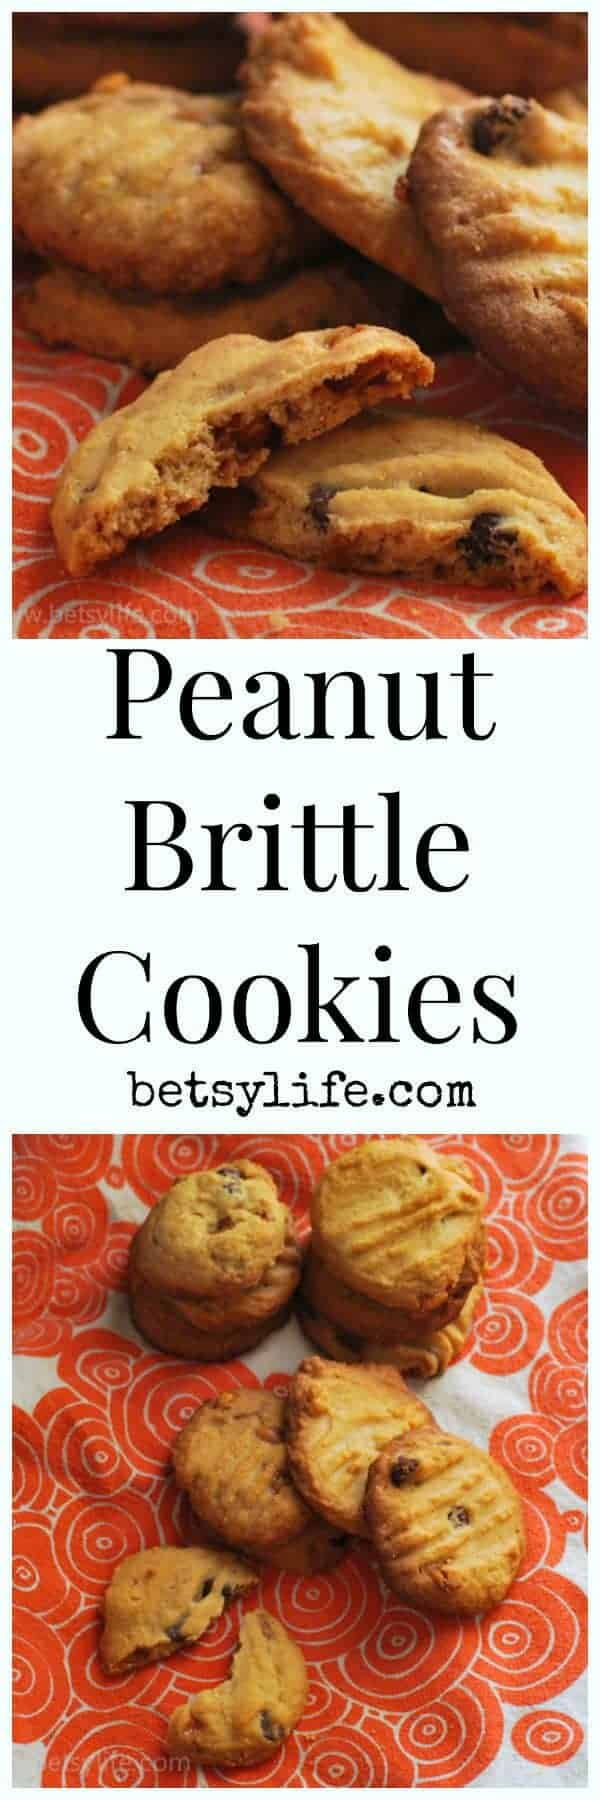 place on a greased cookie sheet bake for 15 minutes wordpress recipe ...